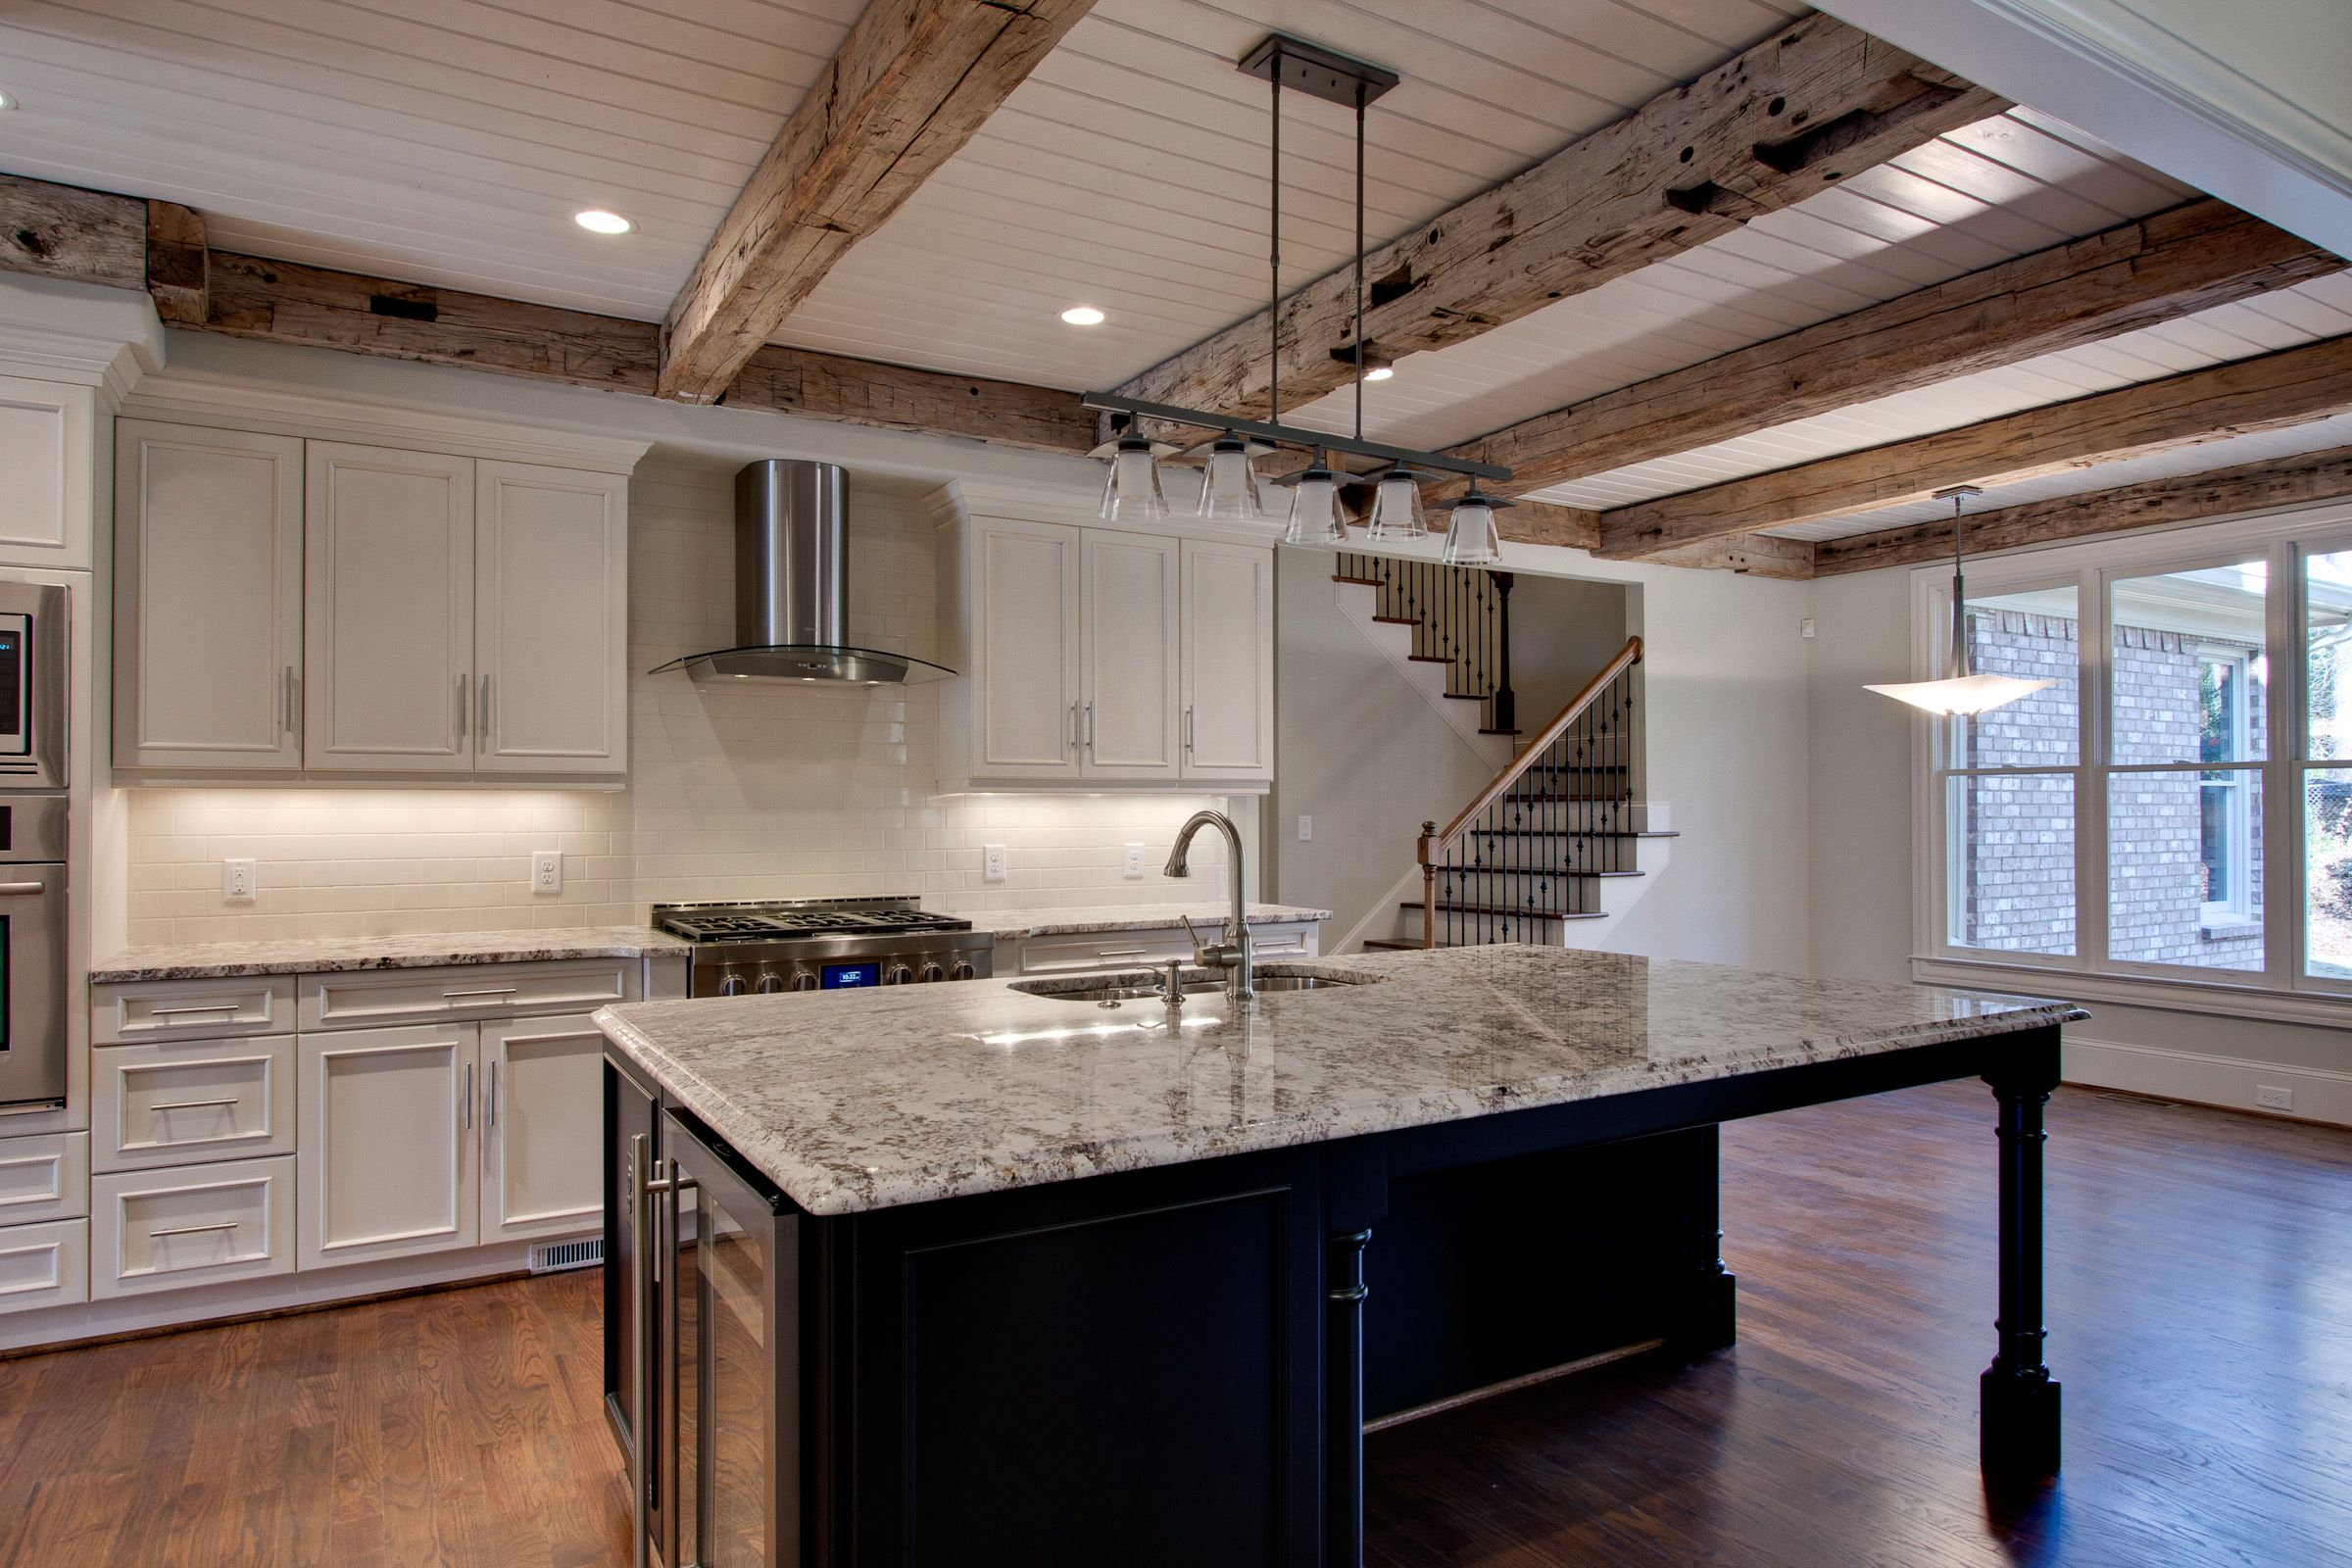 Contact us for the best kitchen remodels in Norcross, GA